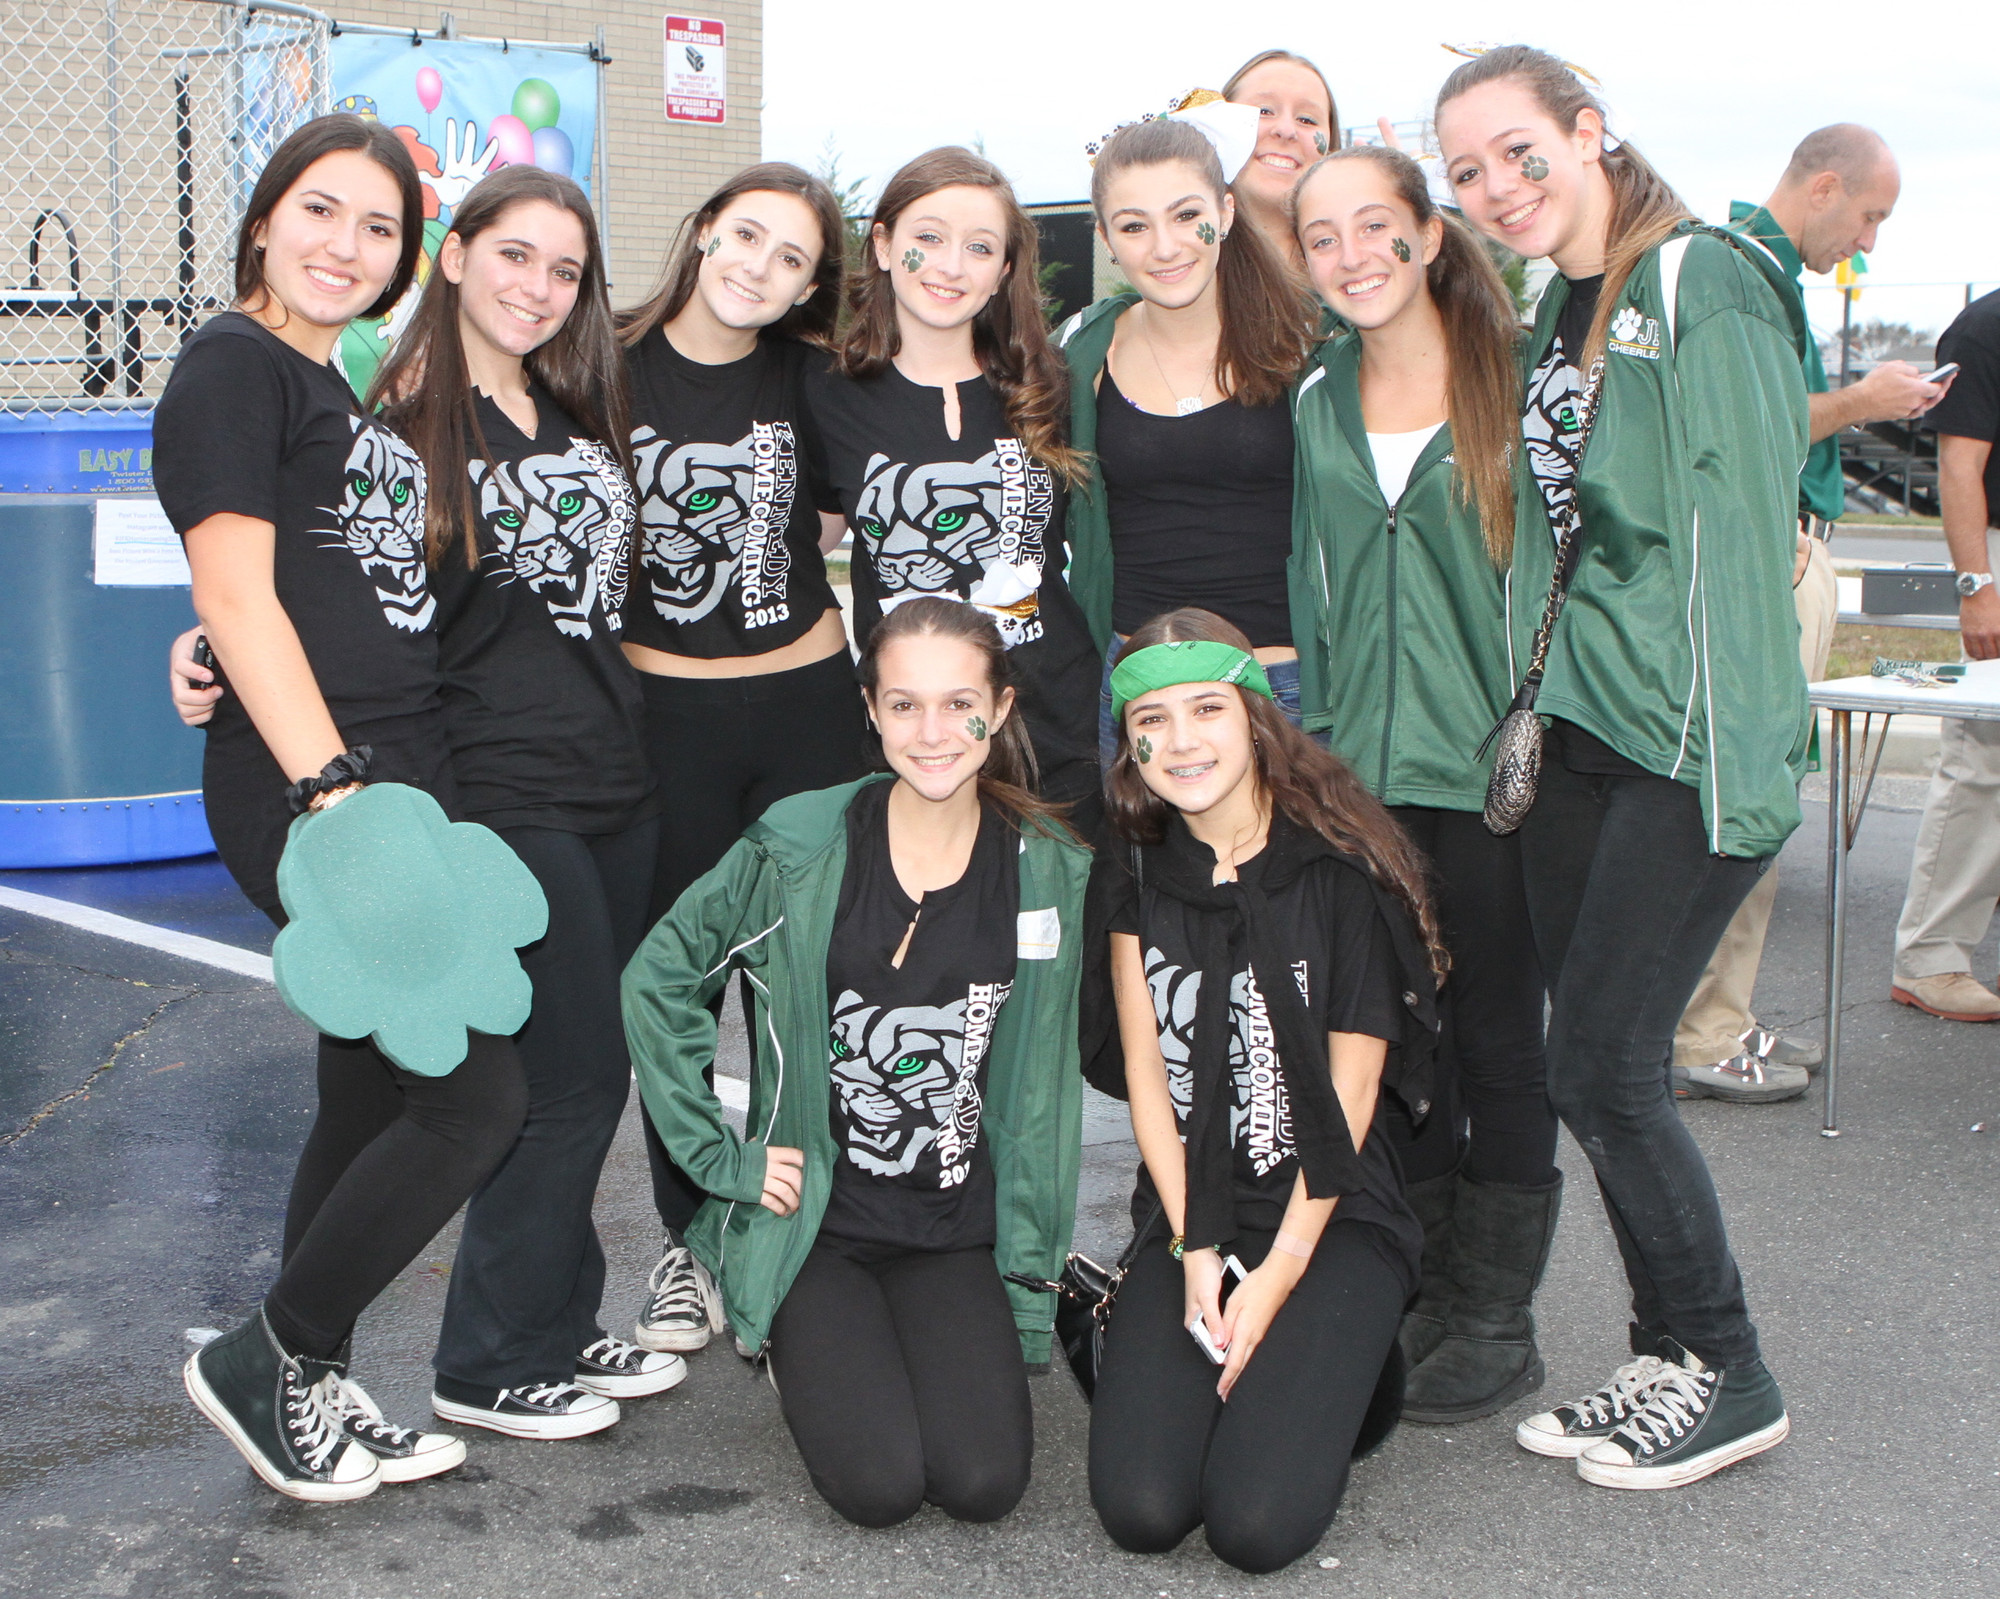 Members of the freshmen class showed their Kennedy pride at their first Homecoming.